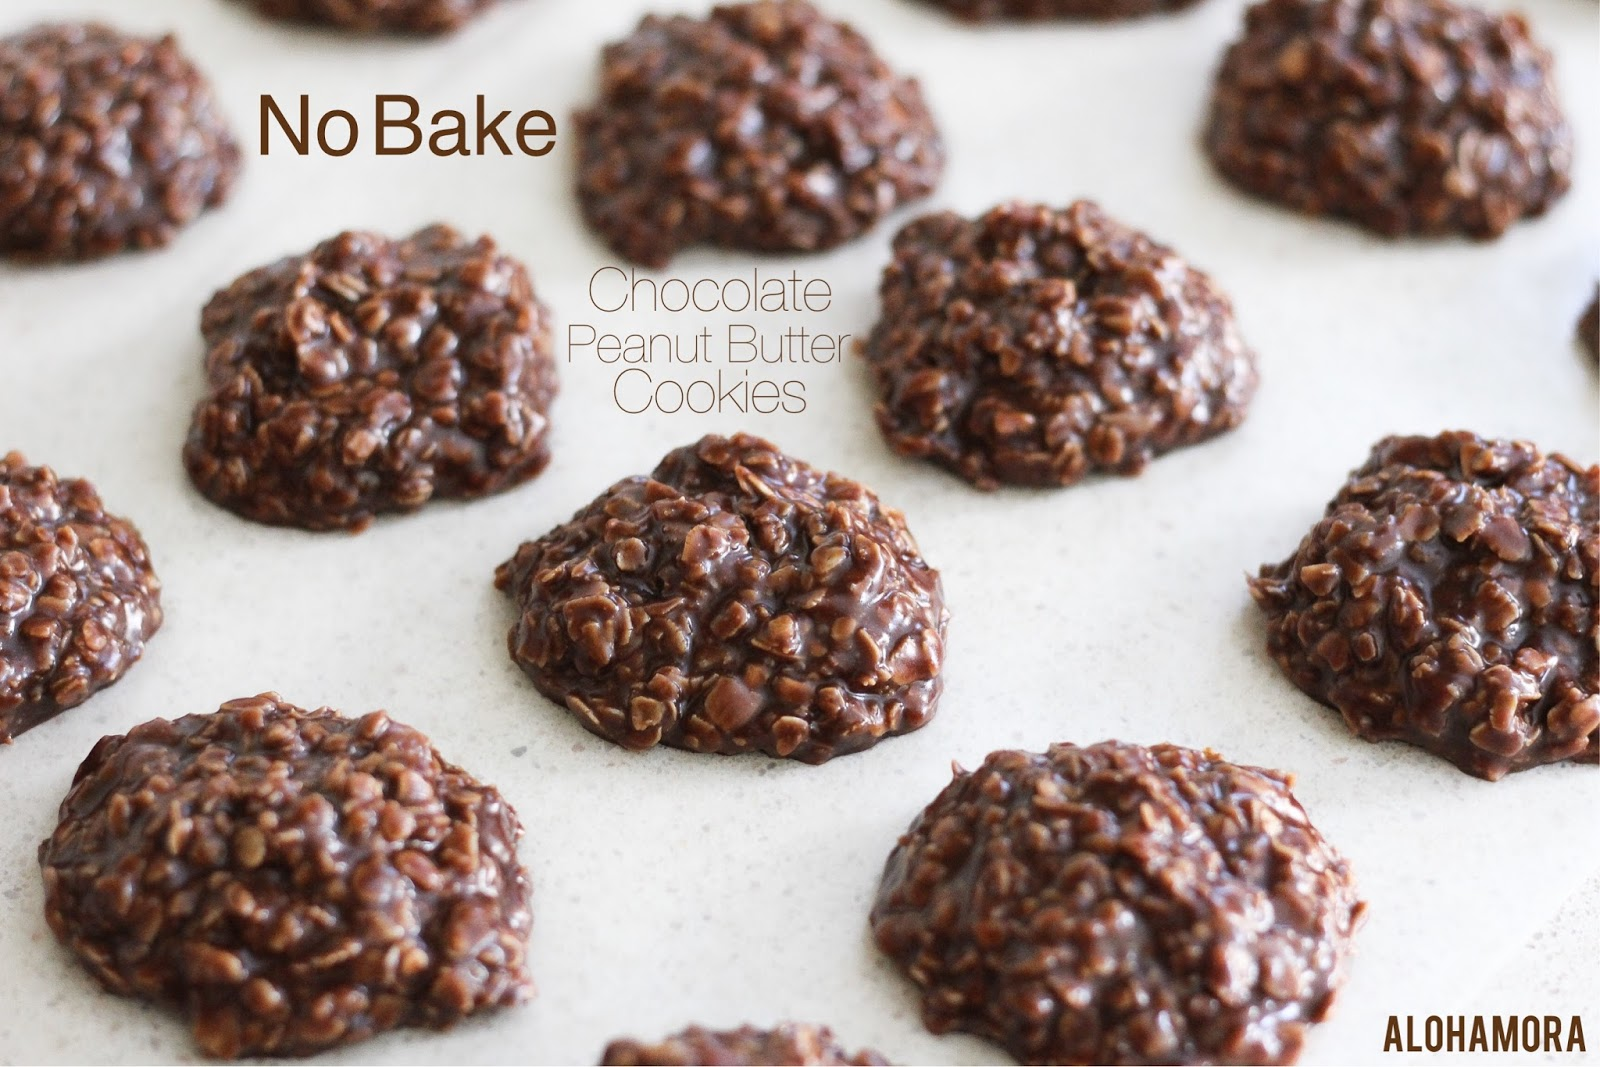 Alohamora open a book no bake chocolate peanut butter cookies this may show my immaturity but in college and still with my kids wed call no bake chocolate peanut butter cookies gorilla poo forumfinder Gallery